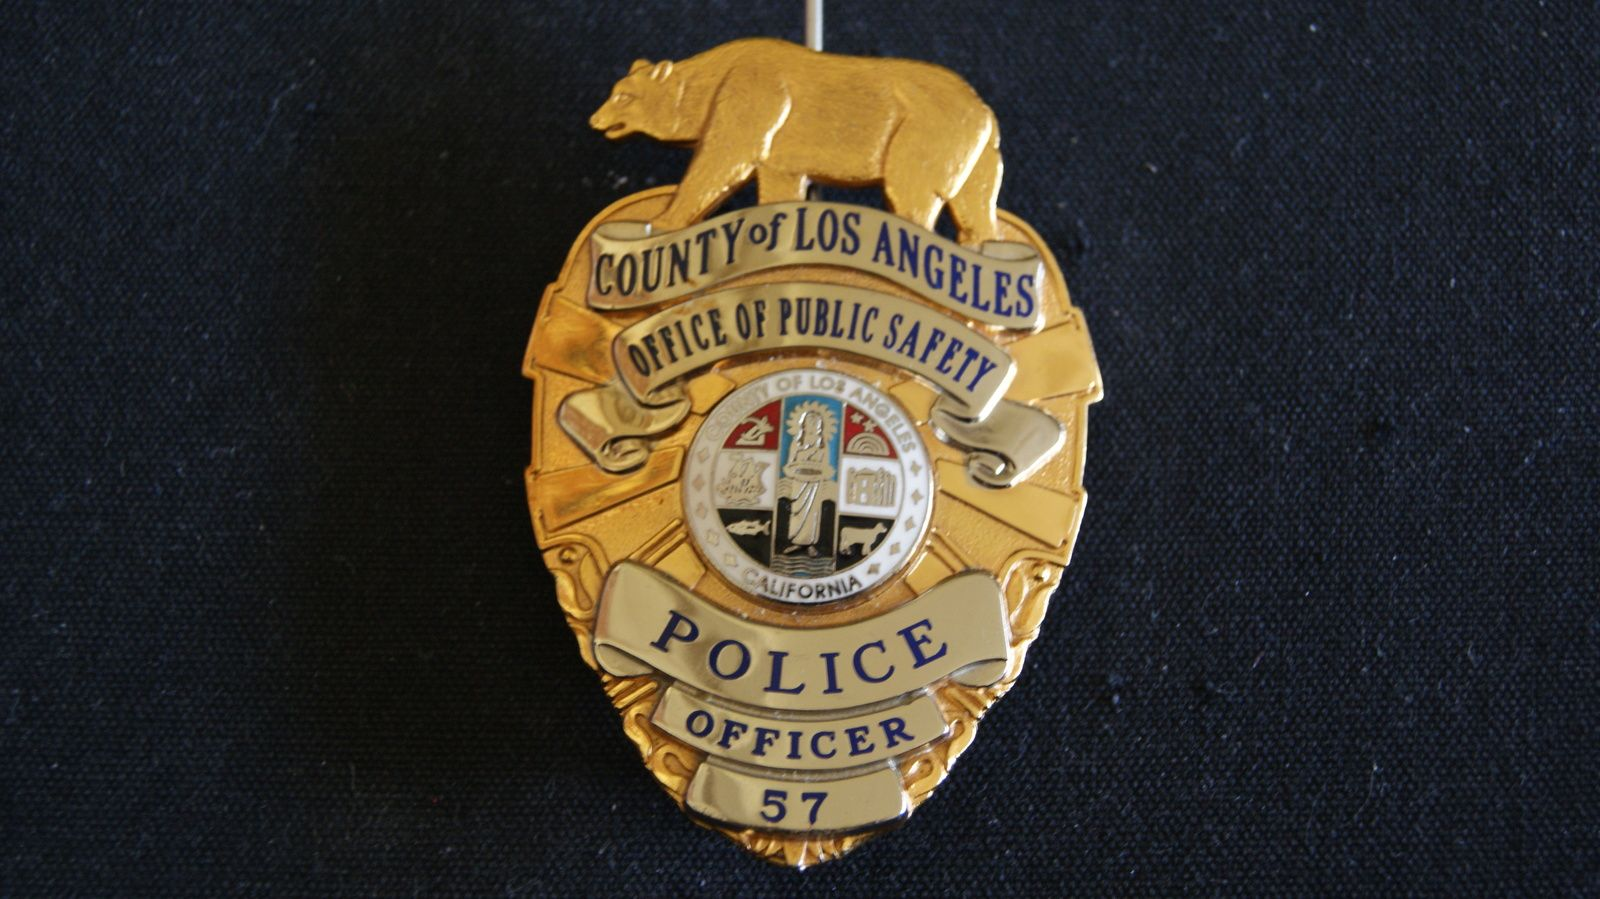 Pin By Solo918 On Police Badges Historical Memorabial Police Badge Fire Badge Police